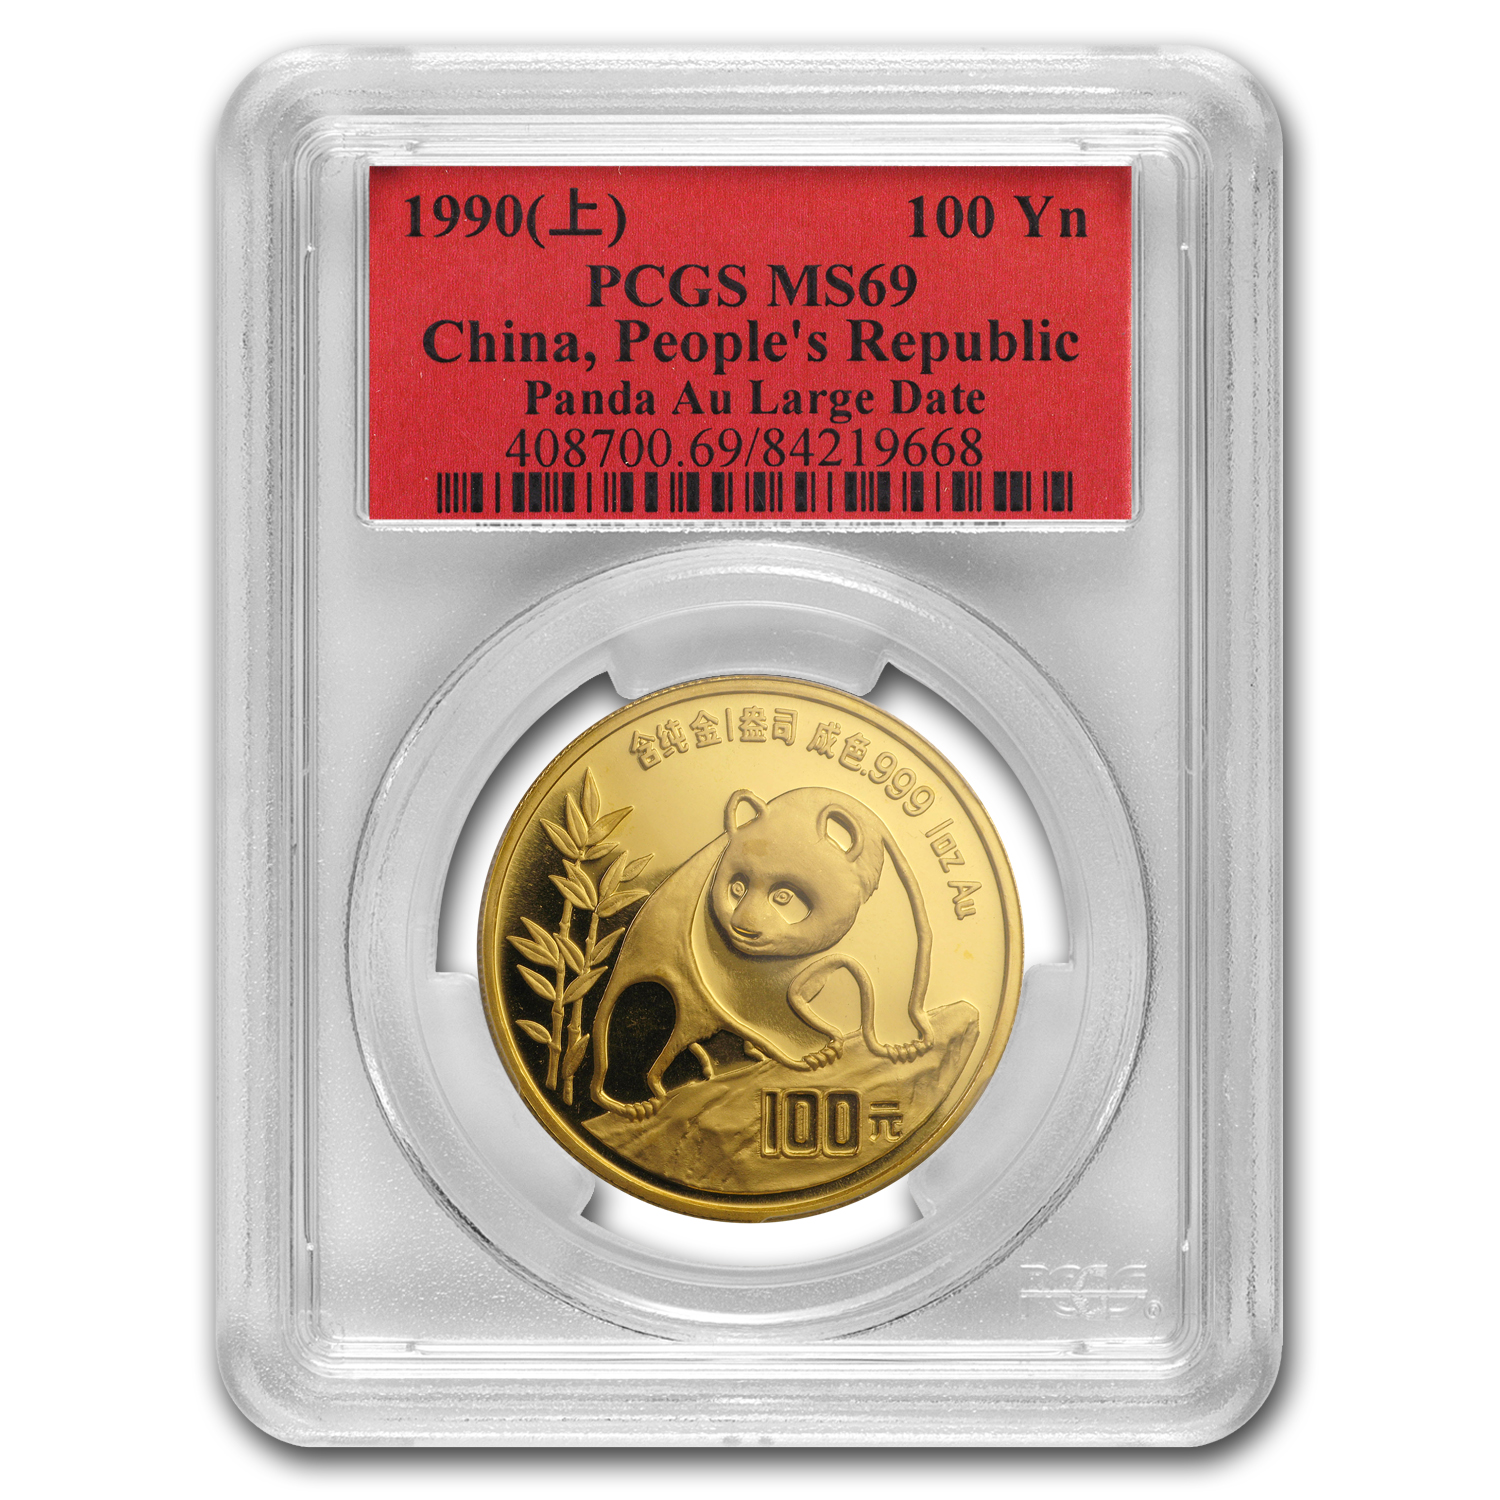 1990 China 1 oz Gold Panda Large Date MS-69 PCGS